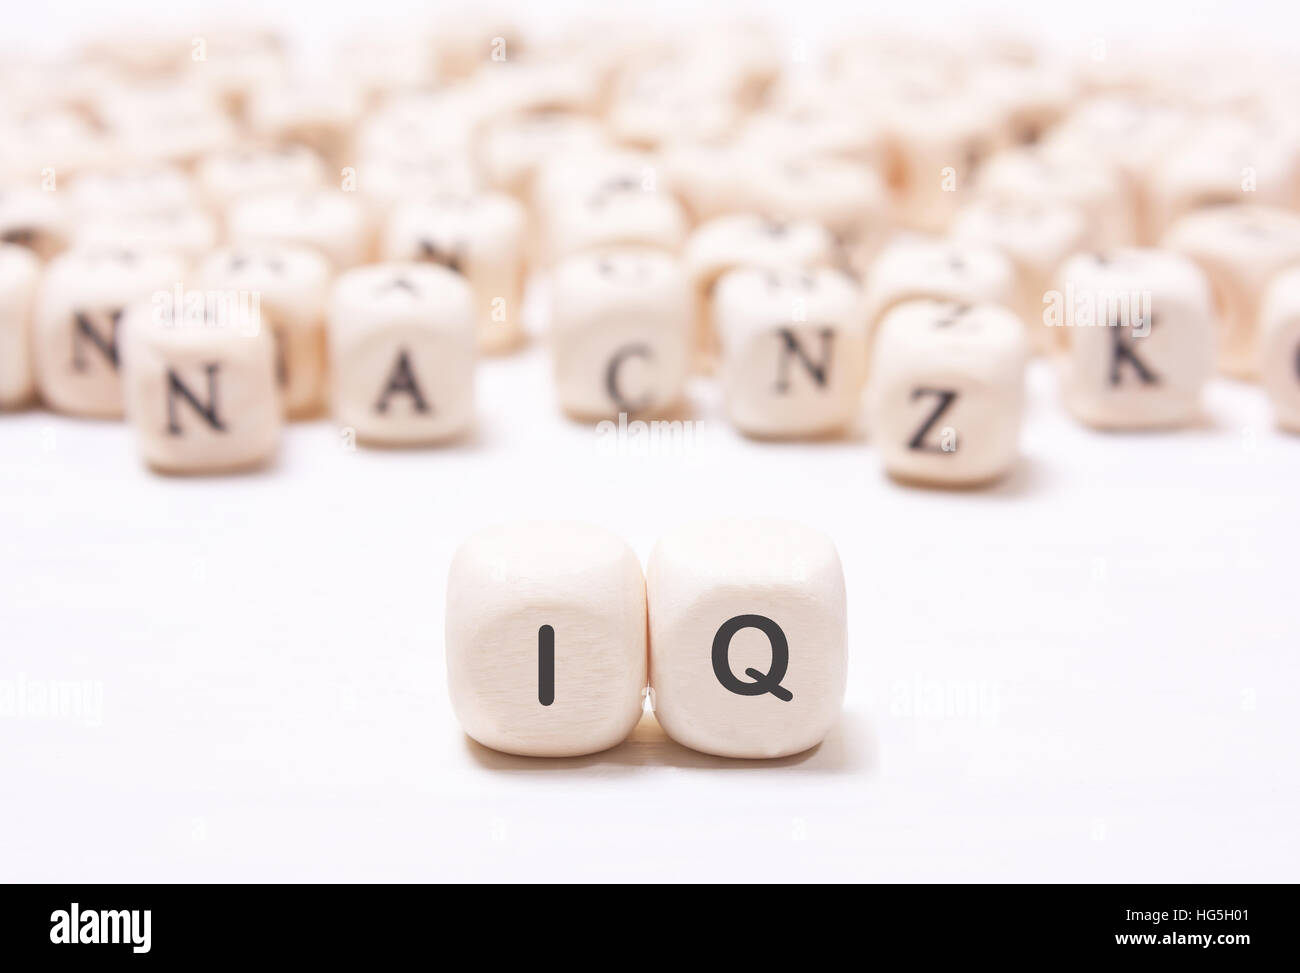 The word 'IQ' on the white  dice on a background of blurred letters. The concept of the mind, the intellect - Stock Image